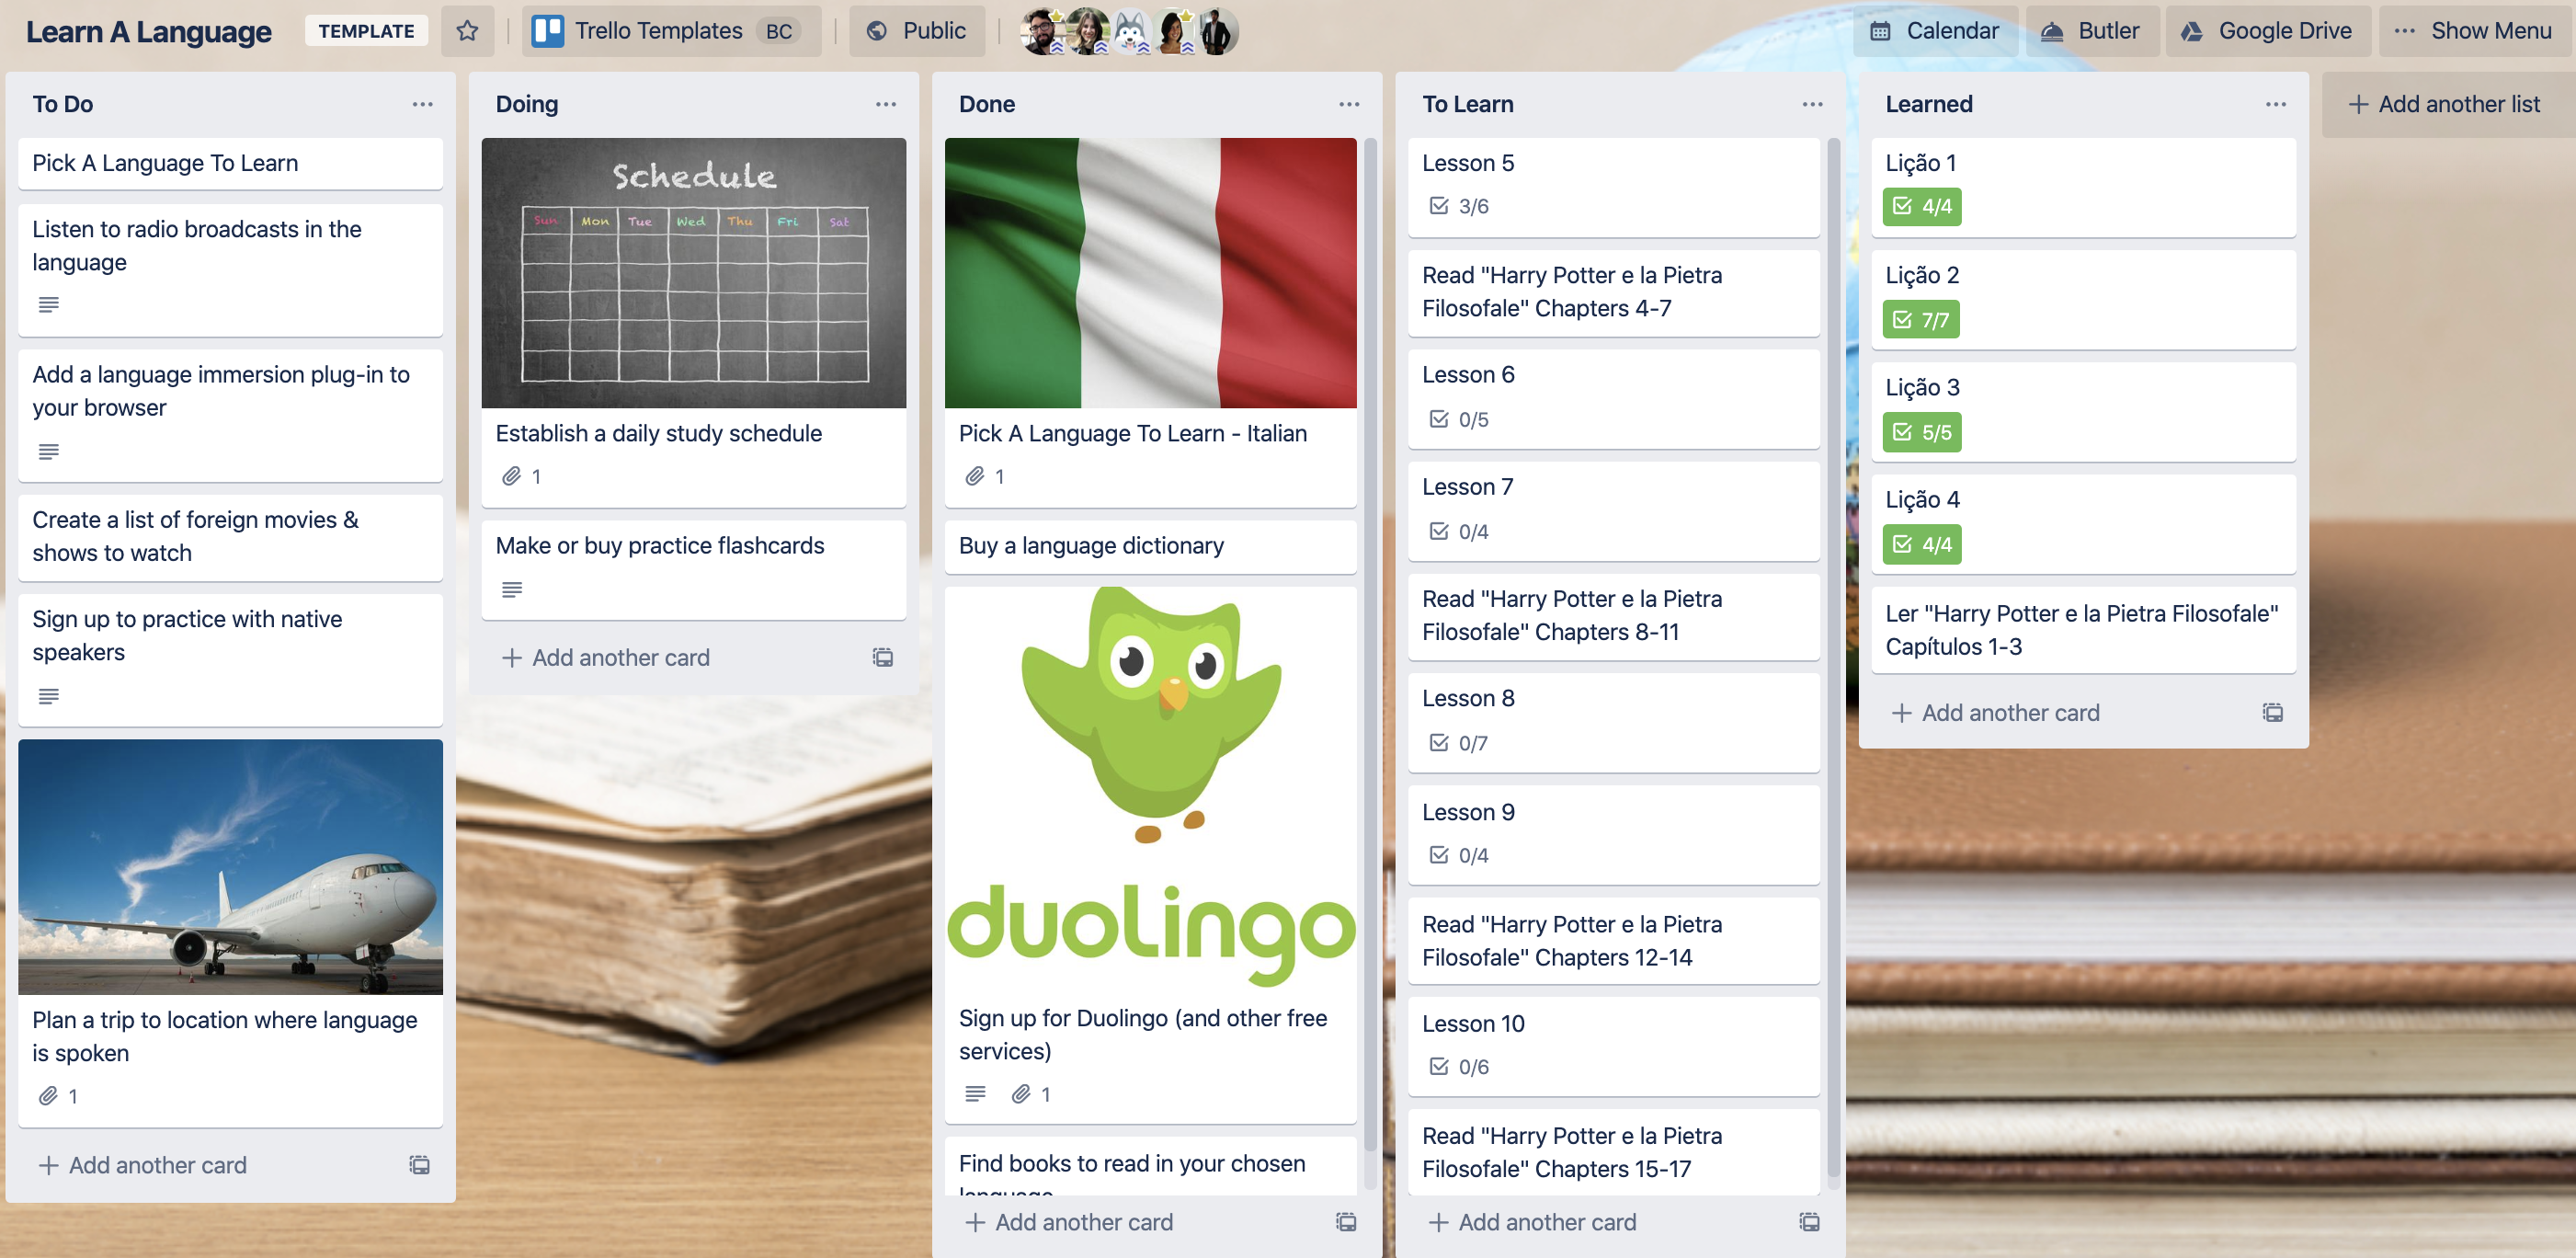 Learn a language template Trello board